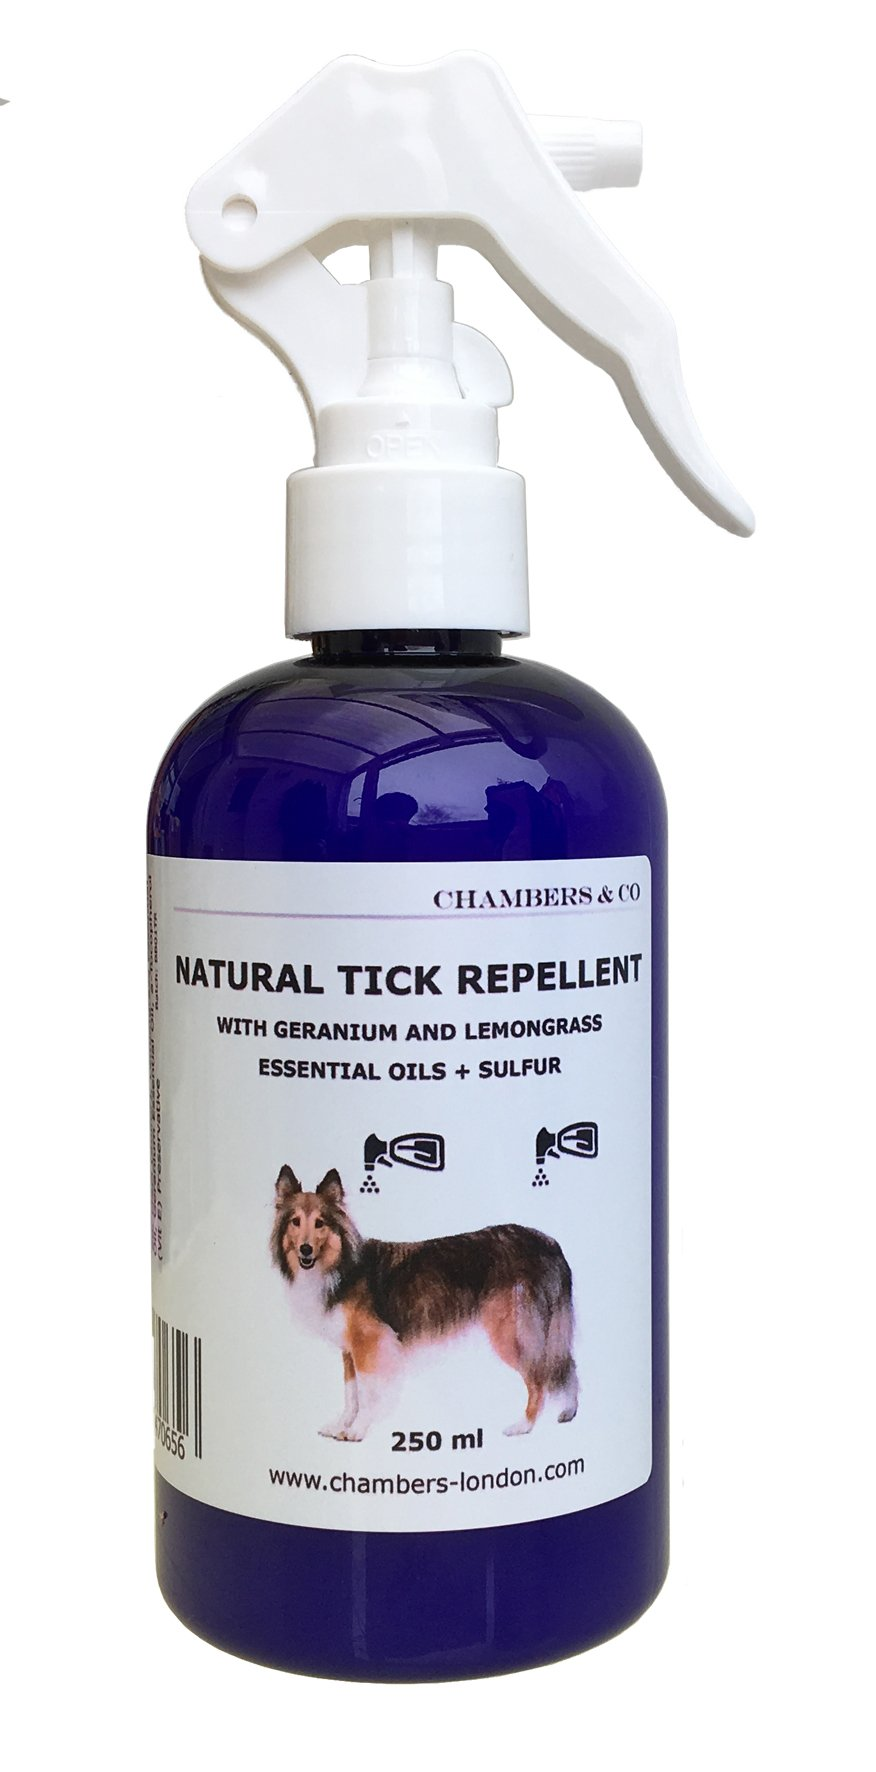 Chambers Natural Tick Repellent 250ml 1